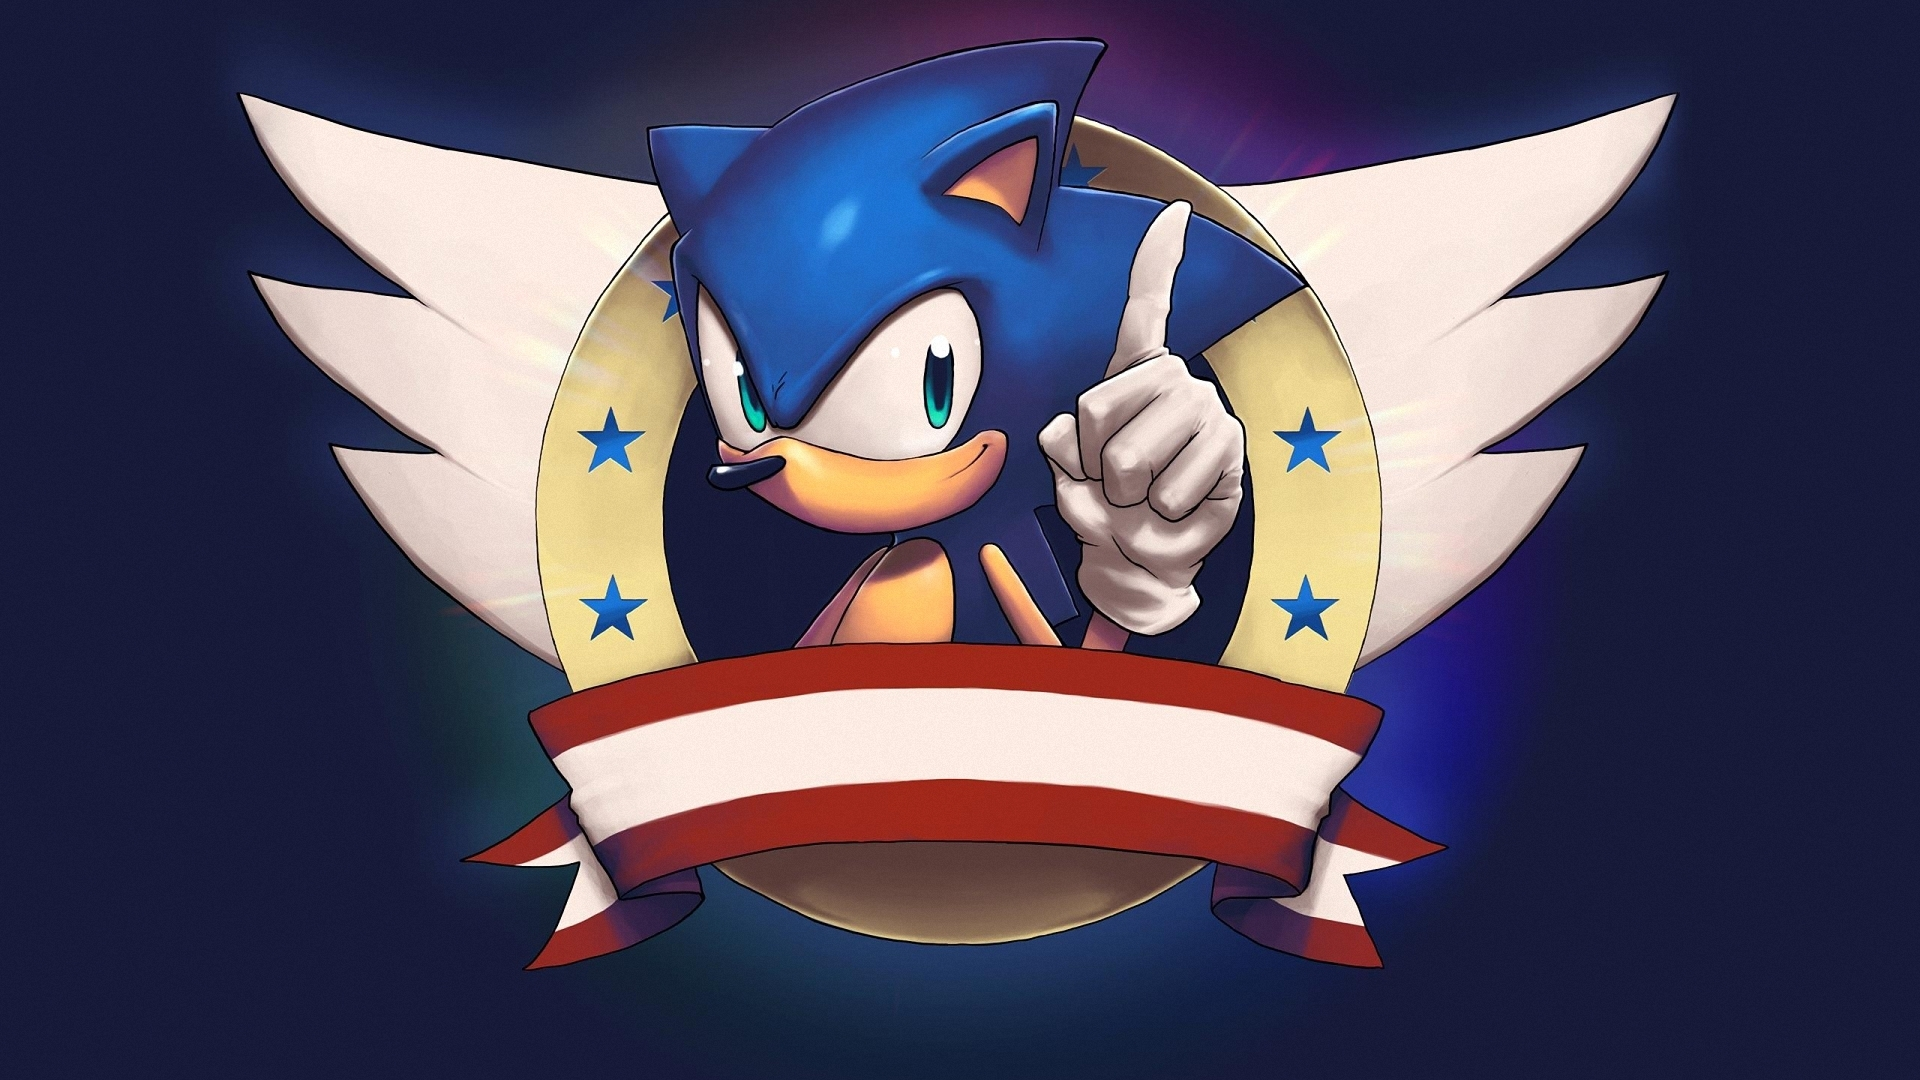 free 1920x1080 sonic the hedgehog game wallpapers full hd 1080p